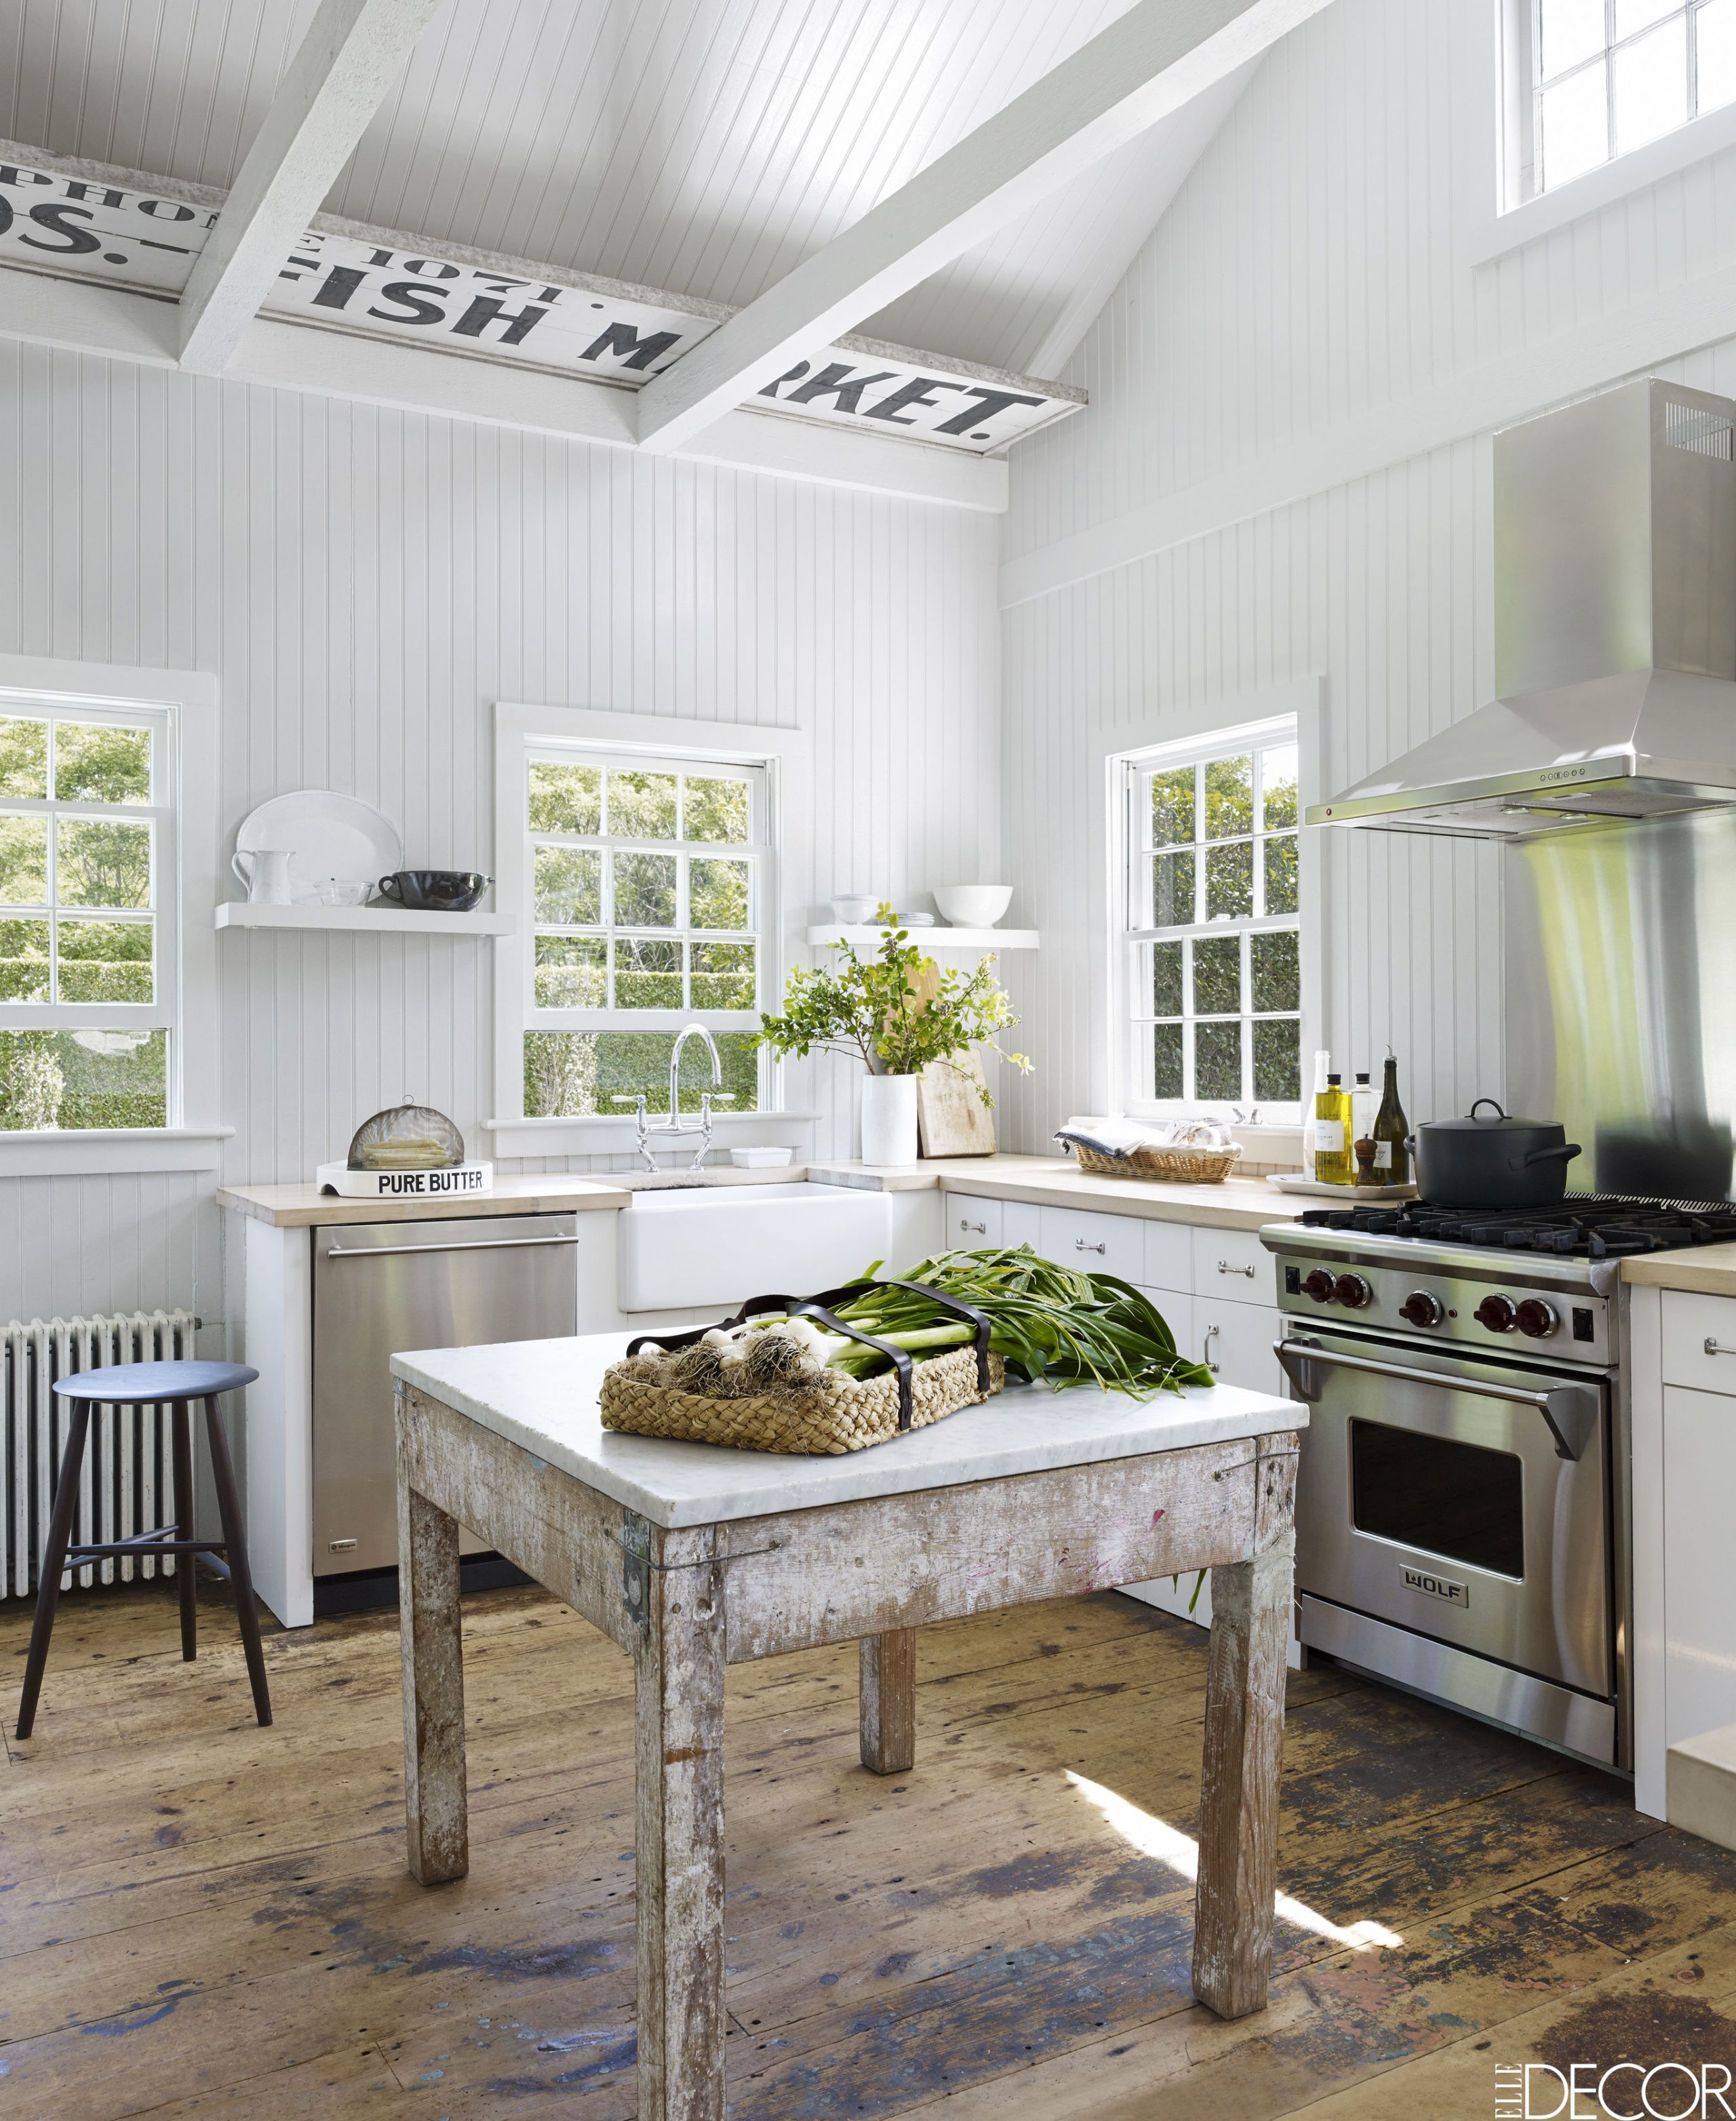 Rustic Country Kitchen Decor 25 rustic kitchen decor ideas - country kitchens design